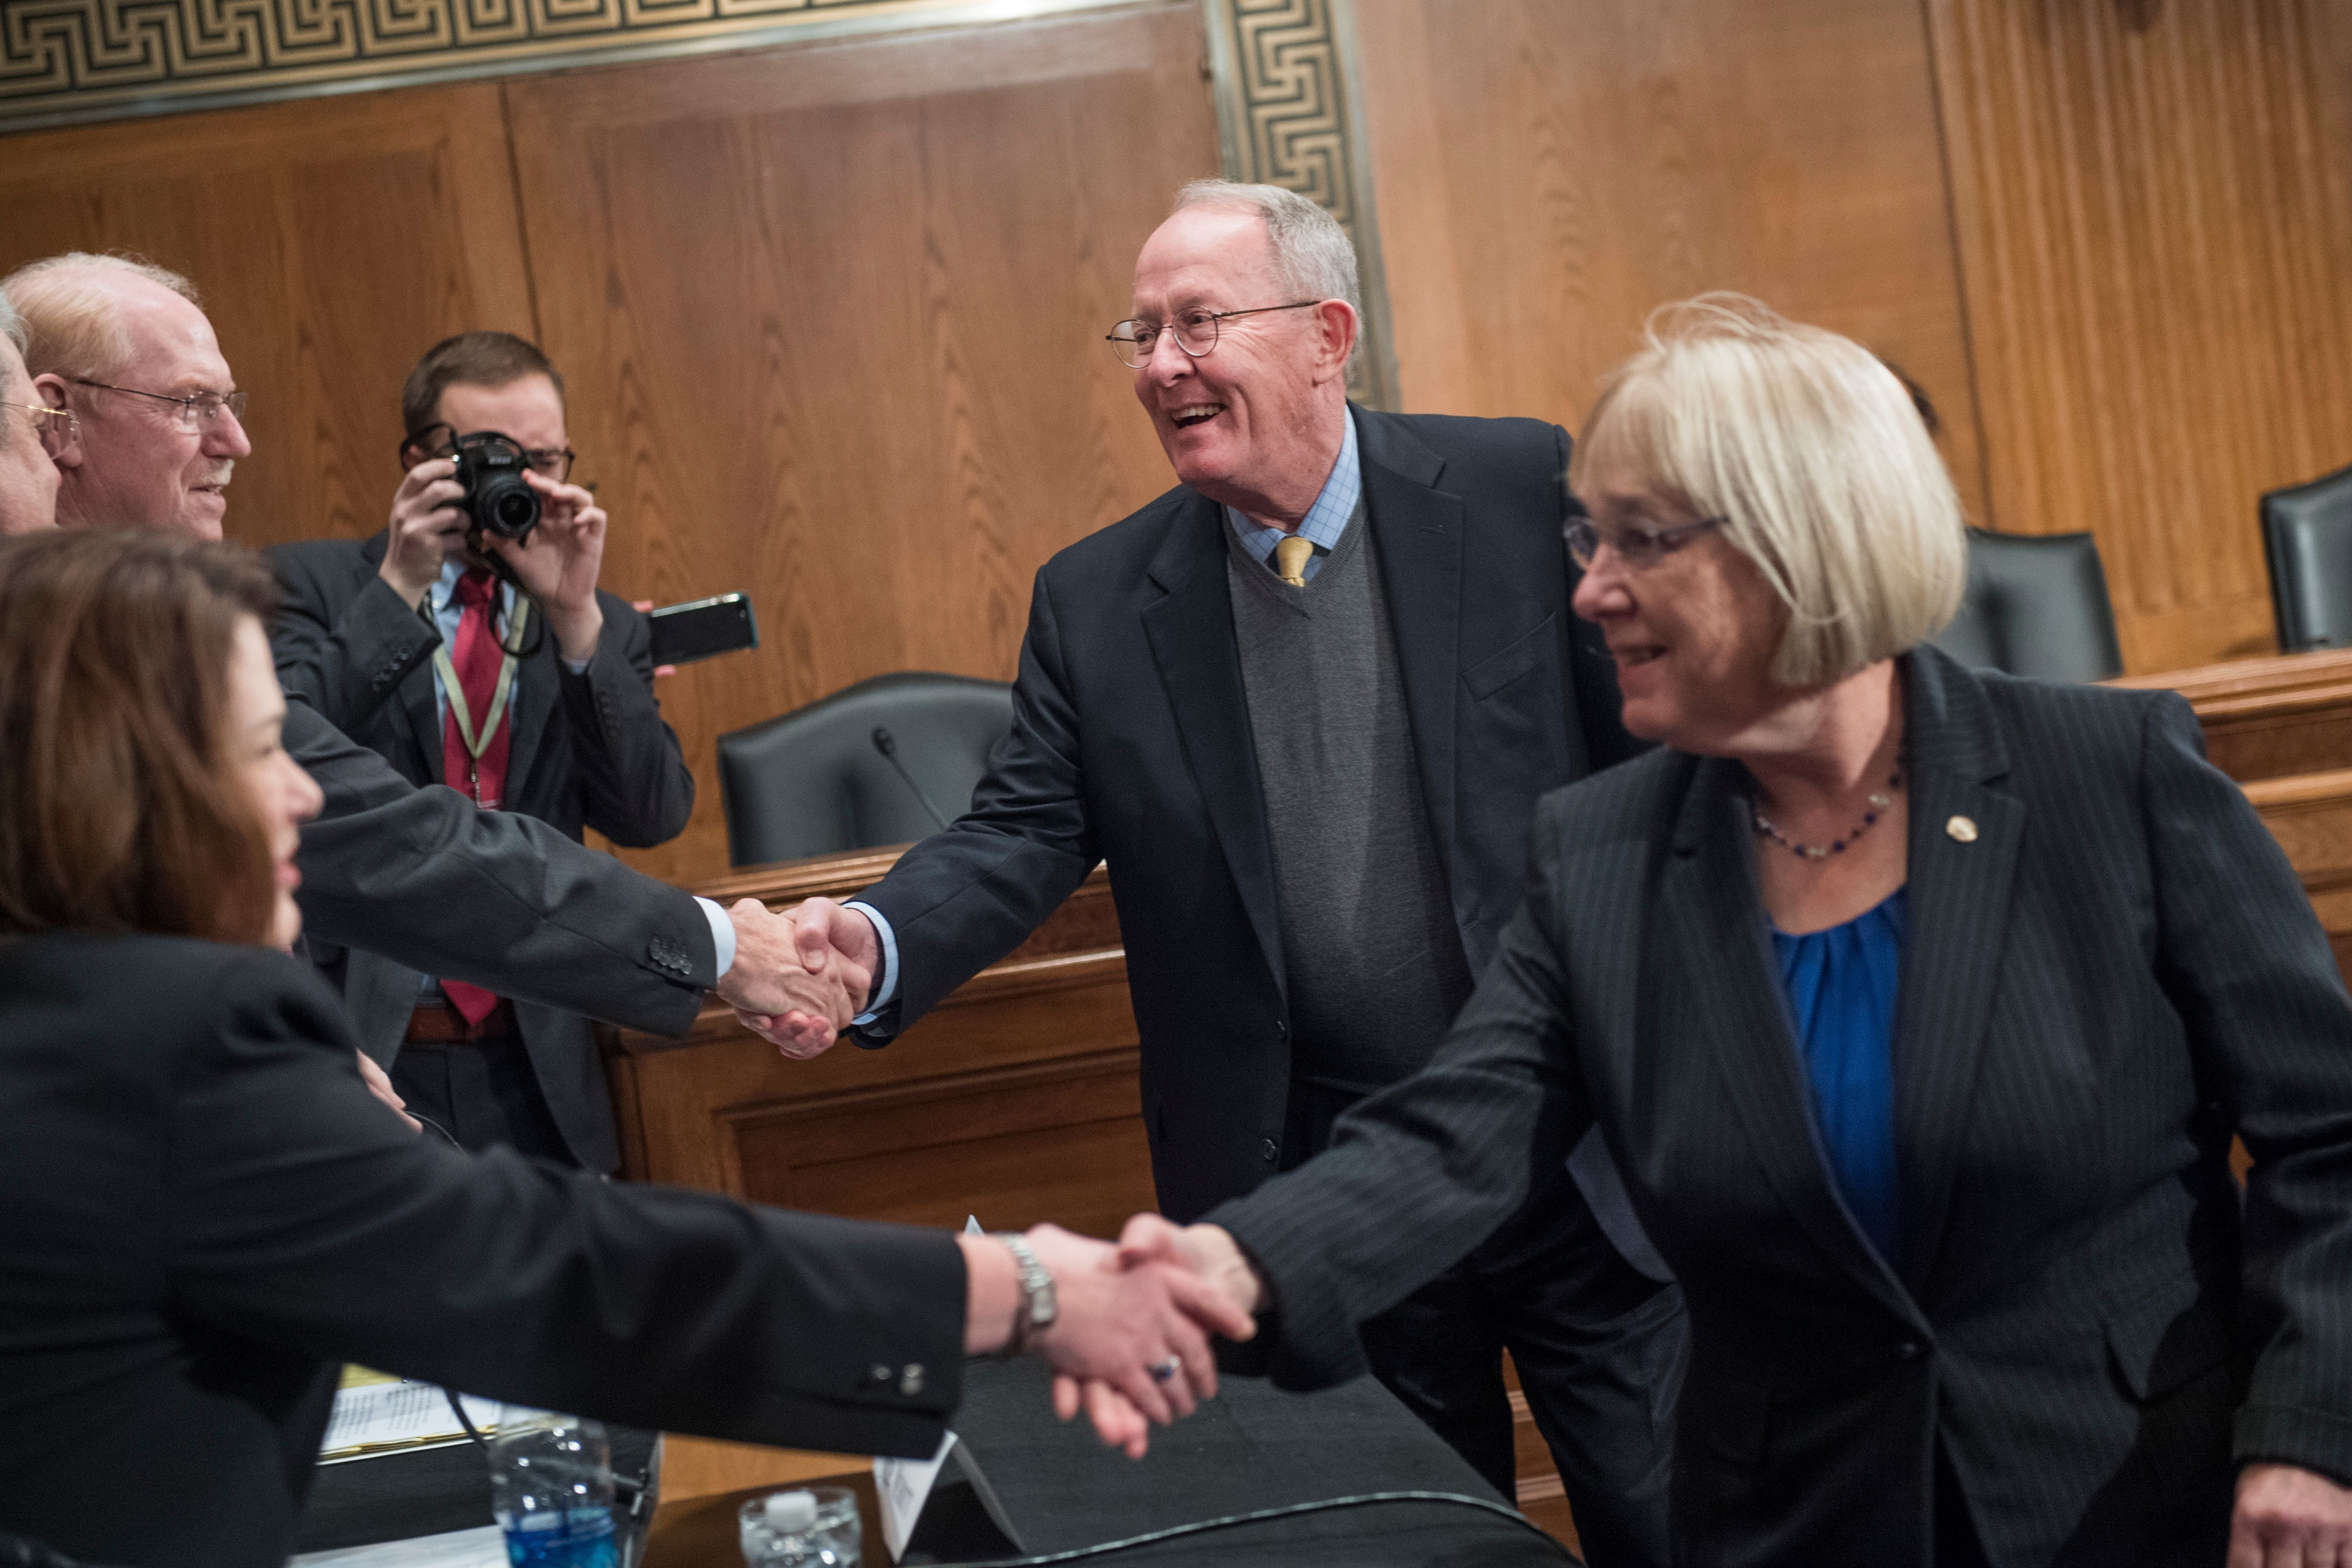 UNITED STATES - OCTOBER 17: Sen. Patty Murray, D-Wash., ranking member, and Chairman Lamar Alexander, R-Tenn., greet witnesses during a Senate Health, Education, Labor and Pensions Committee hearing in Dirksen Building titled 'The Cost of Prescription Drugs: How the Drug Delivery System Affects What Patients Pay, Part II,' on October 17, 2017. (Photo By Tom Williams/CQ Roll Call)